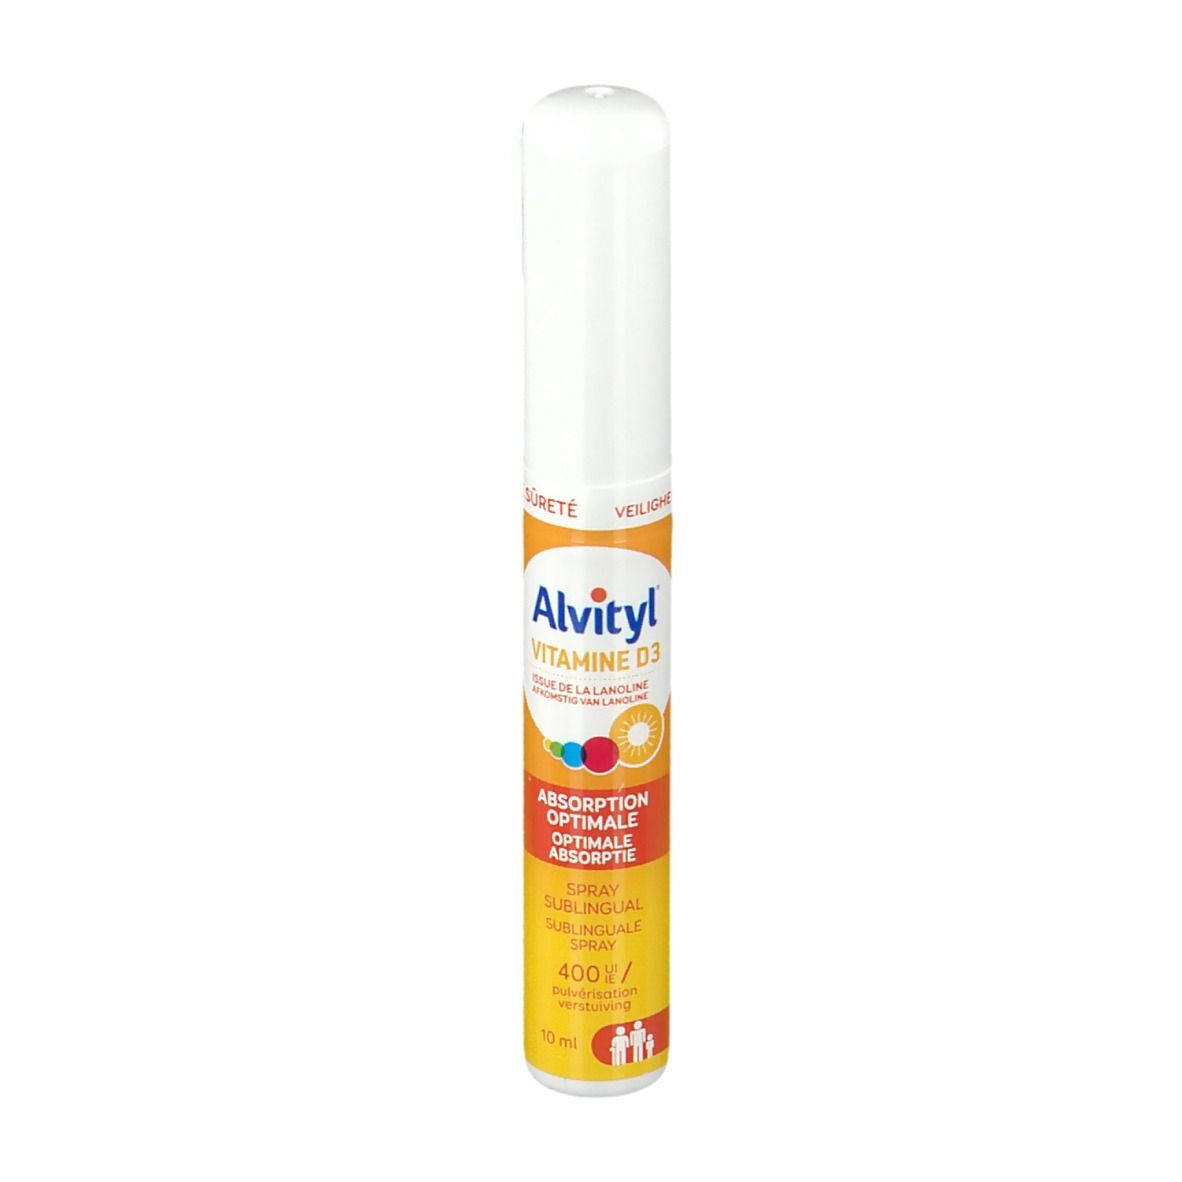 Image of Alvityl VITAMIN D3 Spray